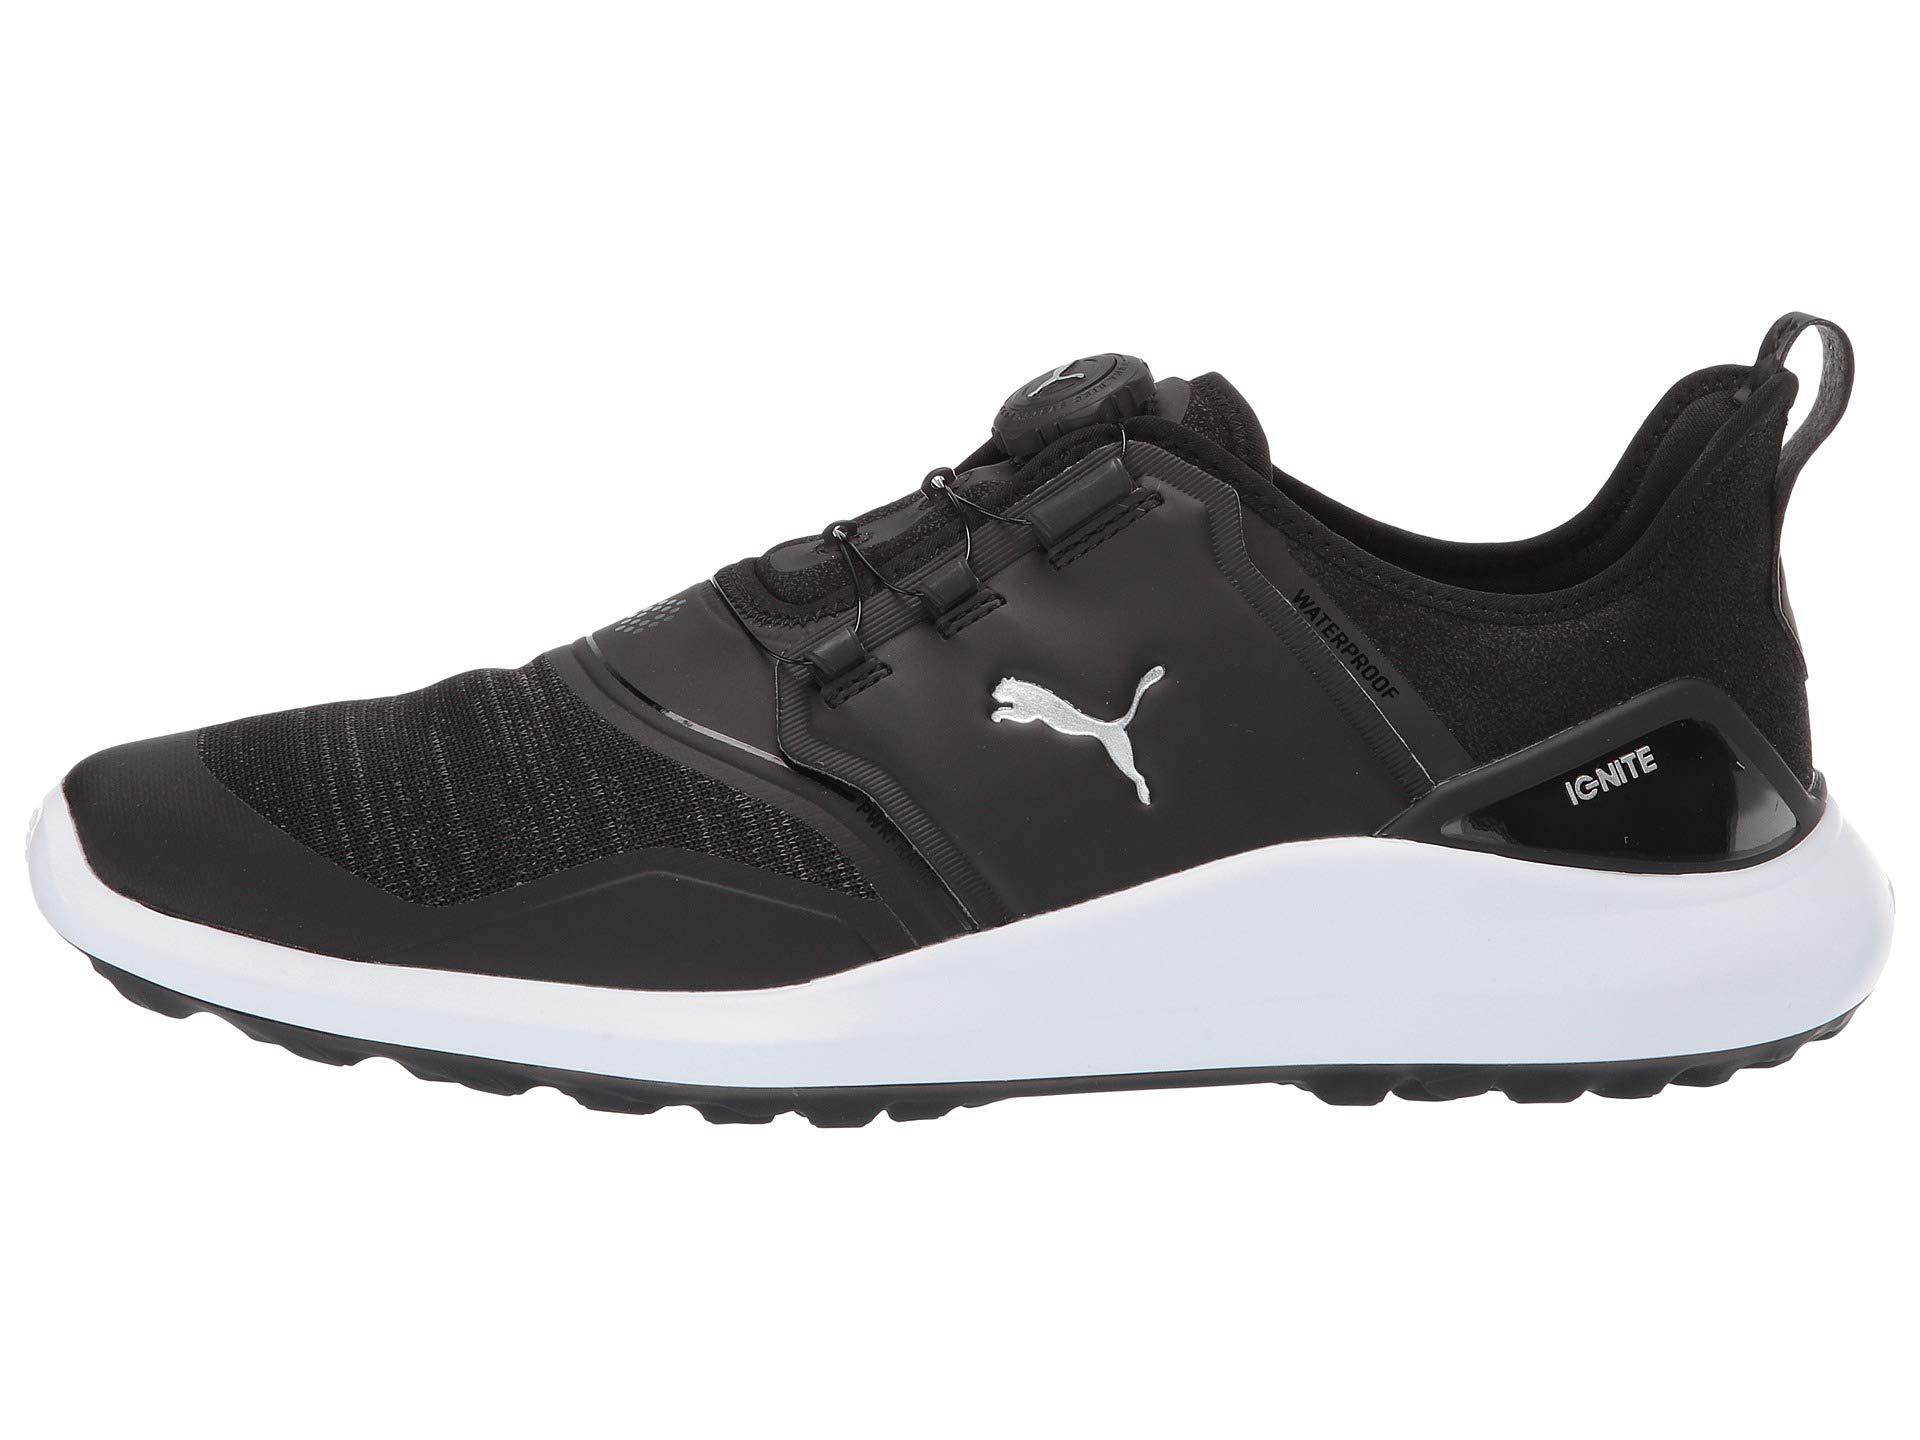 Ignite Nxt Lace Golf Shoe